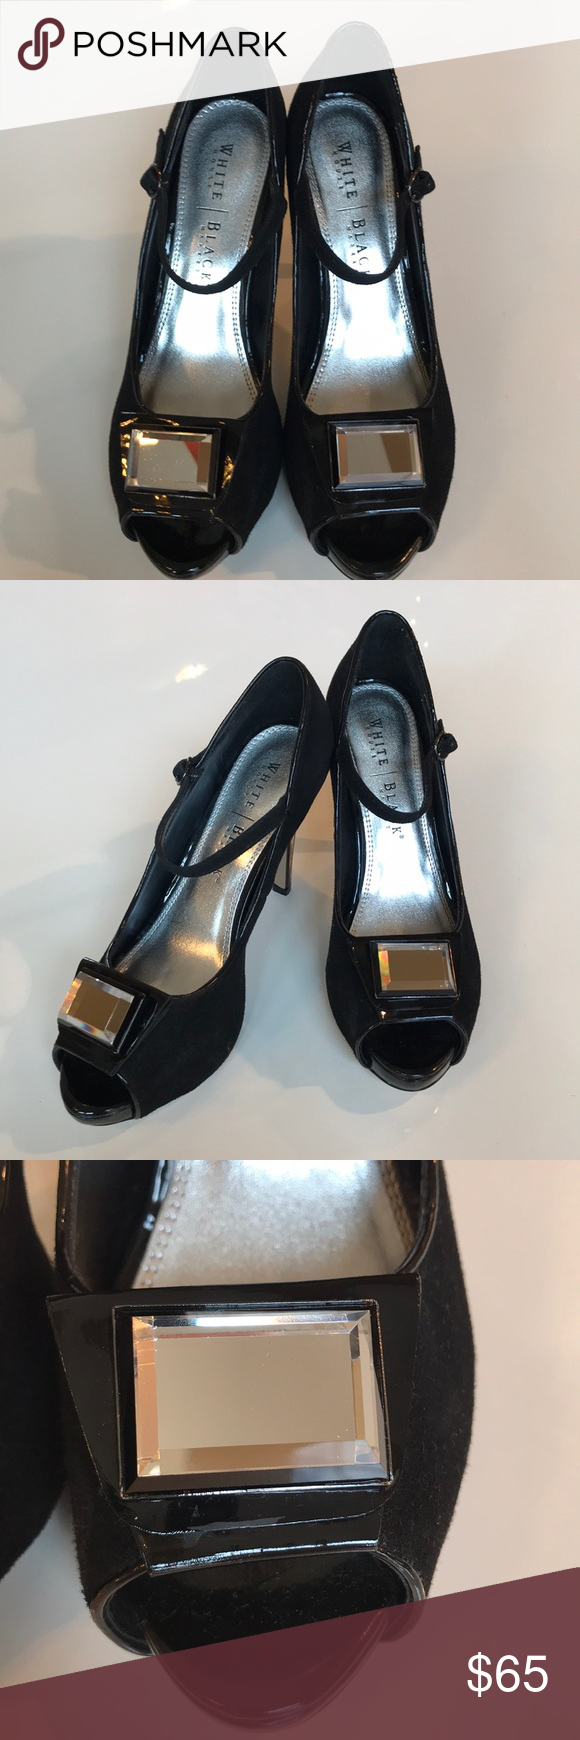 """🥂🍾GORGEOUS WHITE HOUSE BLACK MARKET HEELS🍾🥂 🥂🍾GORGEOUS WHITE HOUSE BLACK MARKET HEELS🍾🥂. Perfect condition. Size 8 1/2 Medium. Beautiful suede type fabric. Shiny black heels and under the mirror embellishments. 4 1/2"""" heel 1/2"""" platform. Very unique. Cool heels. Lots of compliments.🖤💋🎉  🖤BUNDLE ITEMS AND PAY SHIPPING ONCE 🖤 🍾HAPPY POSHING 🍾 🥂ORDERS ARRIVE GIFT WRAPPED WITH A FREE GIFT 🥂 White House Black Market Shoes Heels"""